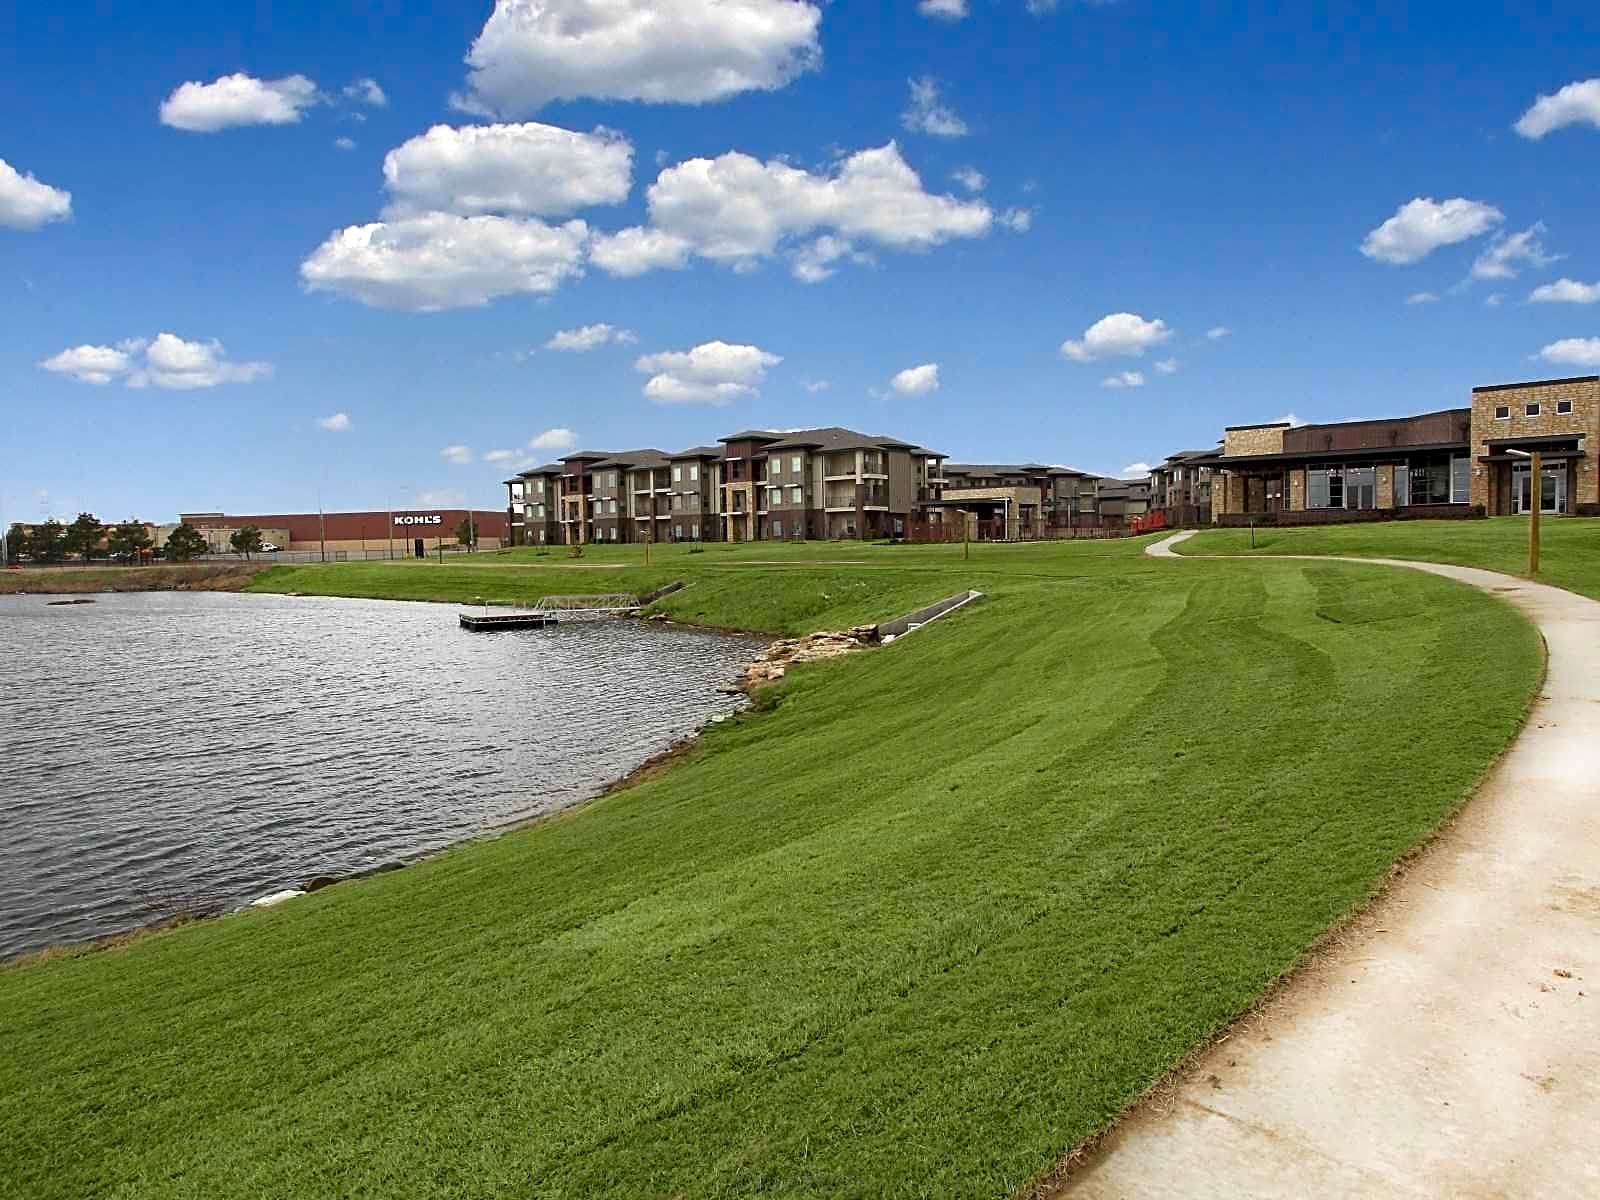 Apartments Near RSU 98 Apartments for Rogers State University Students in Claremore, OK